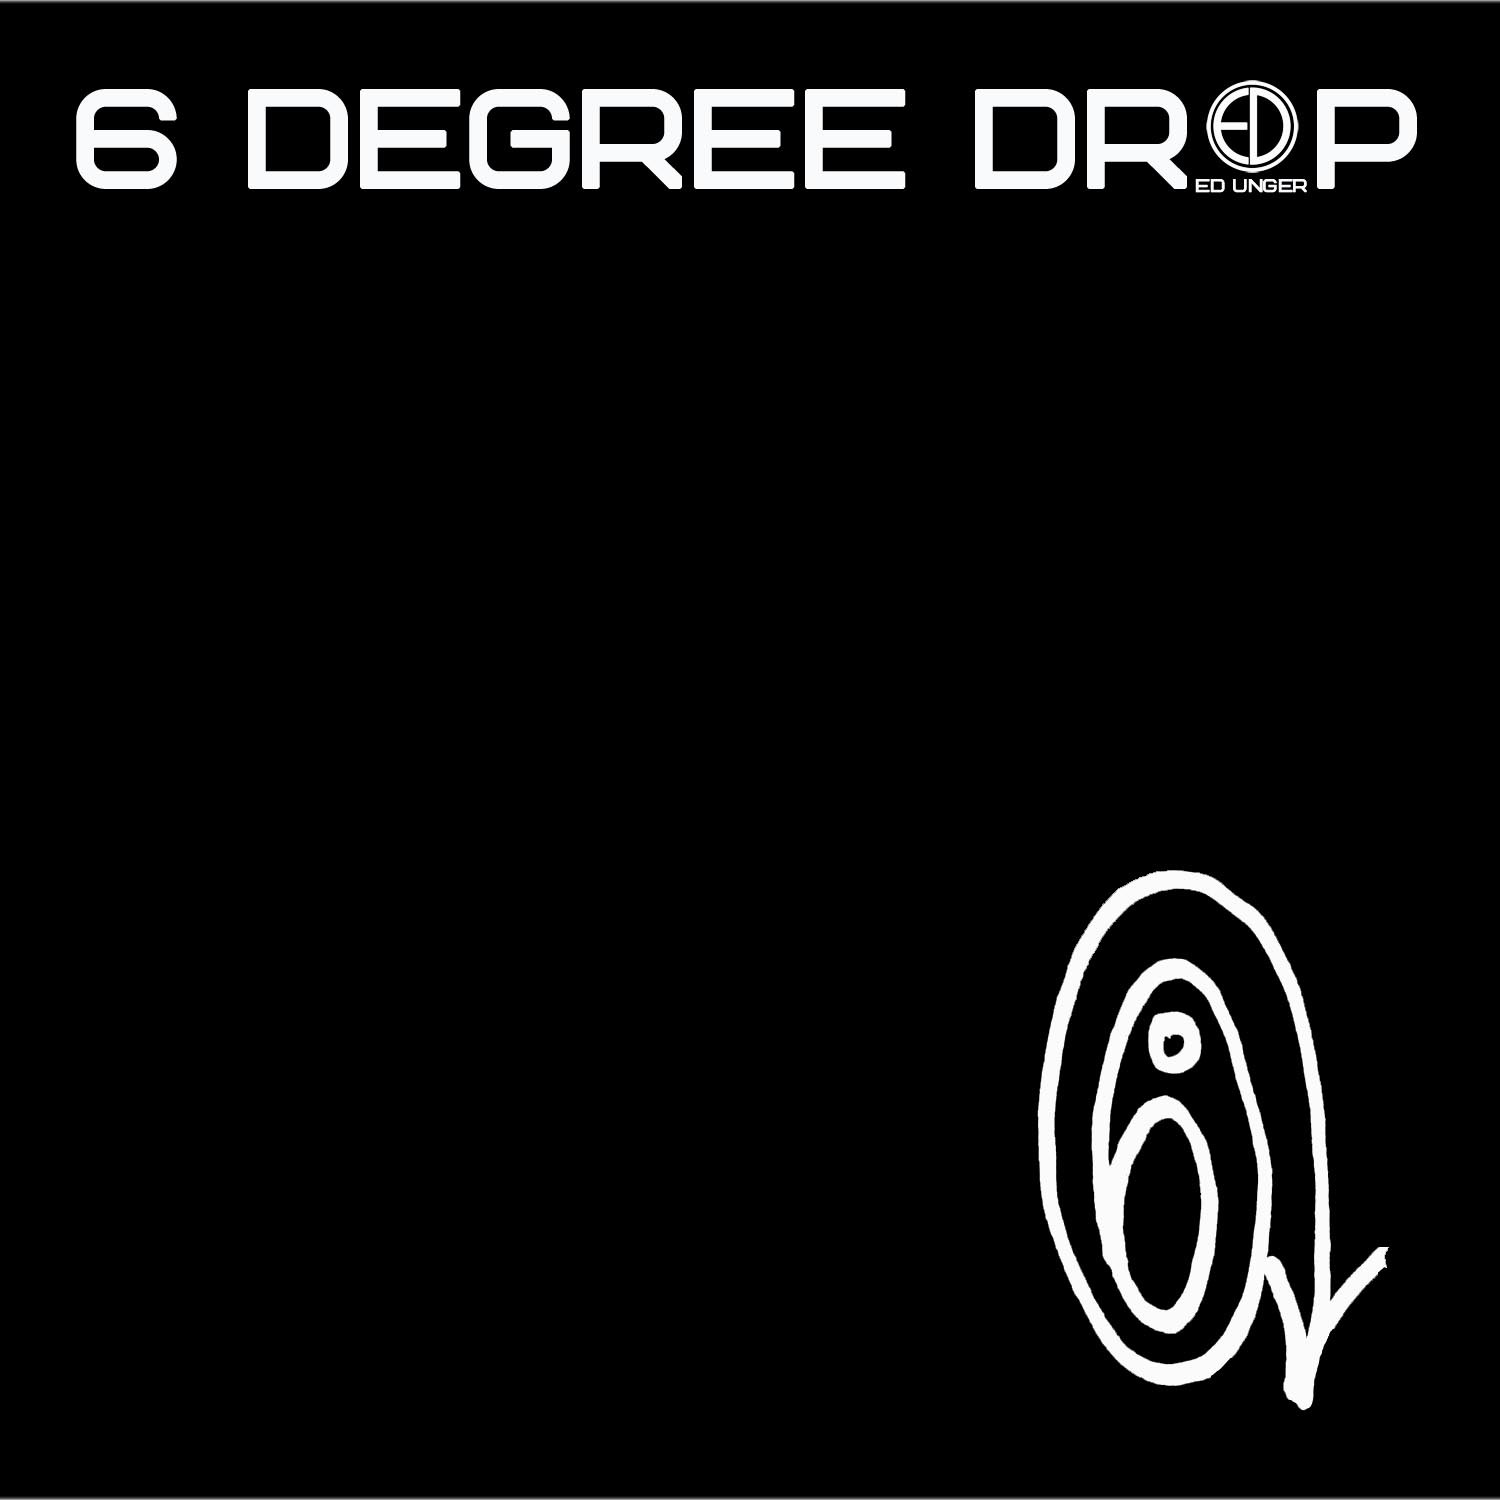 6 degree drop